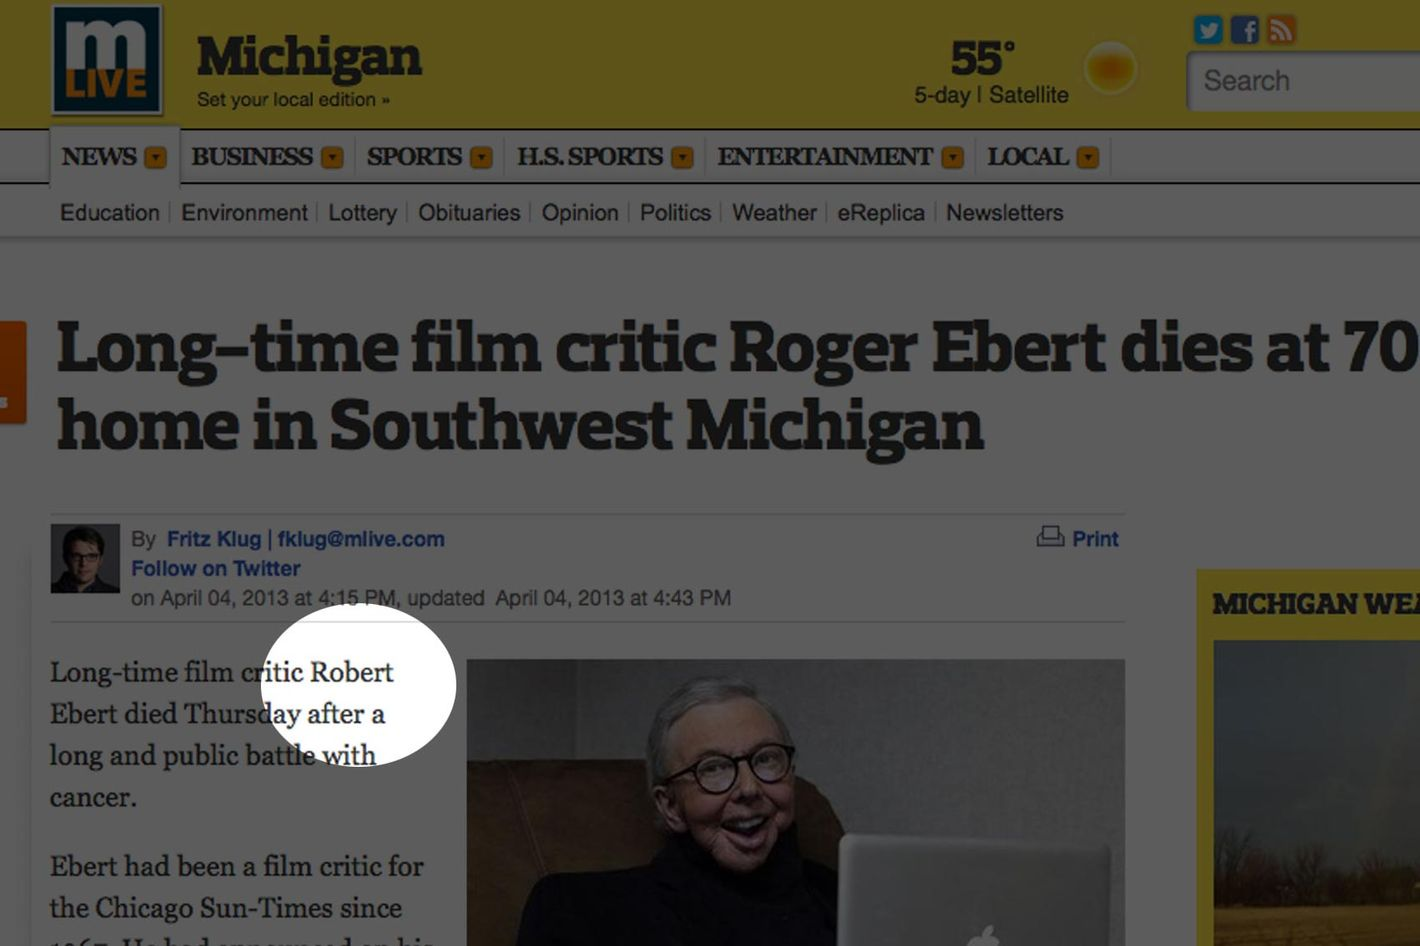 13 News Outlets That Reported the Death of Robert Ebert